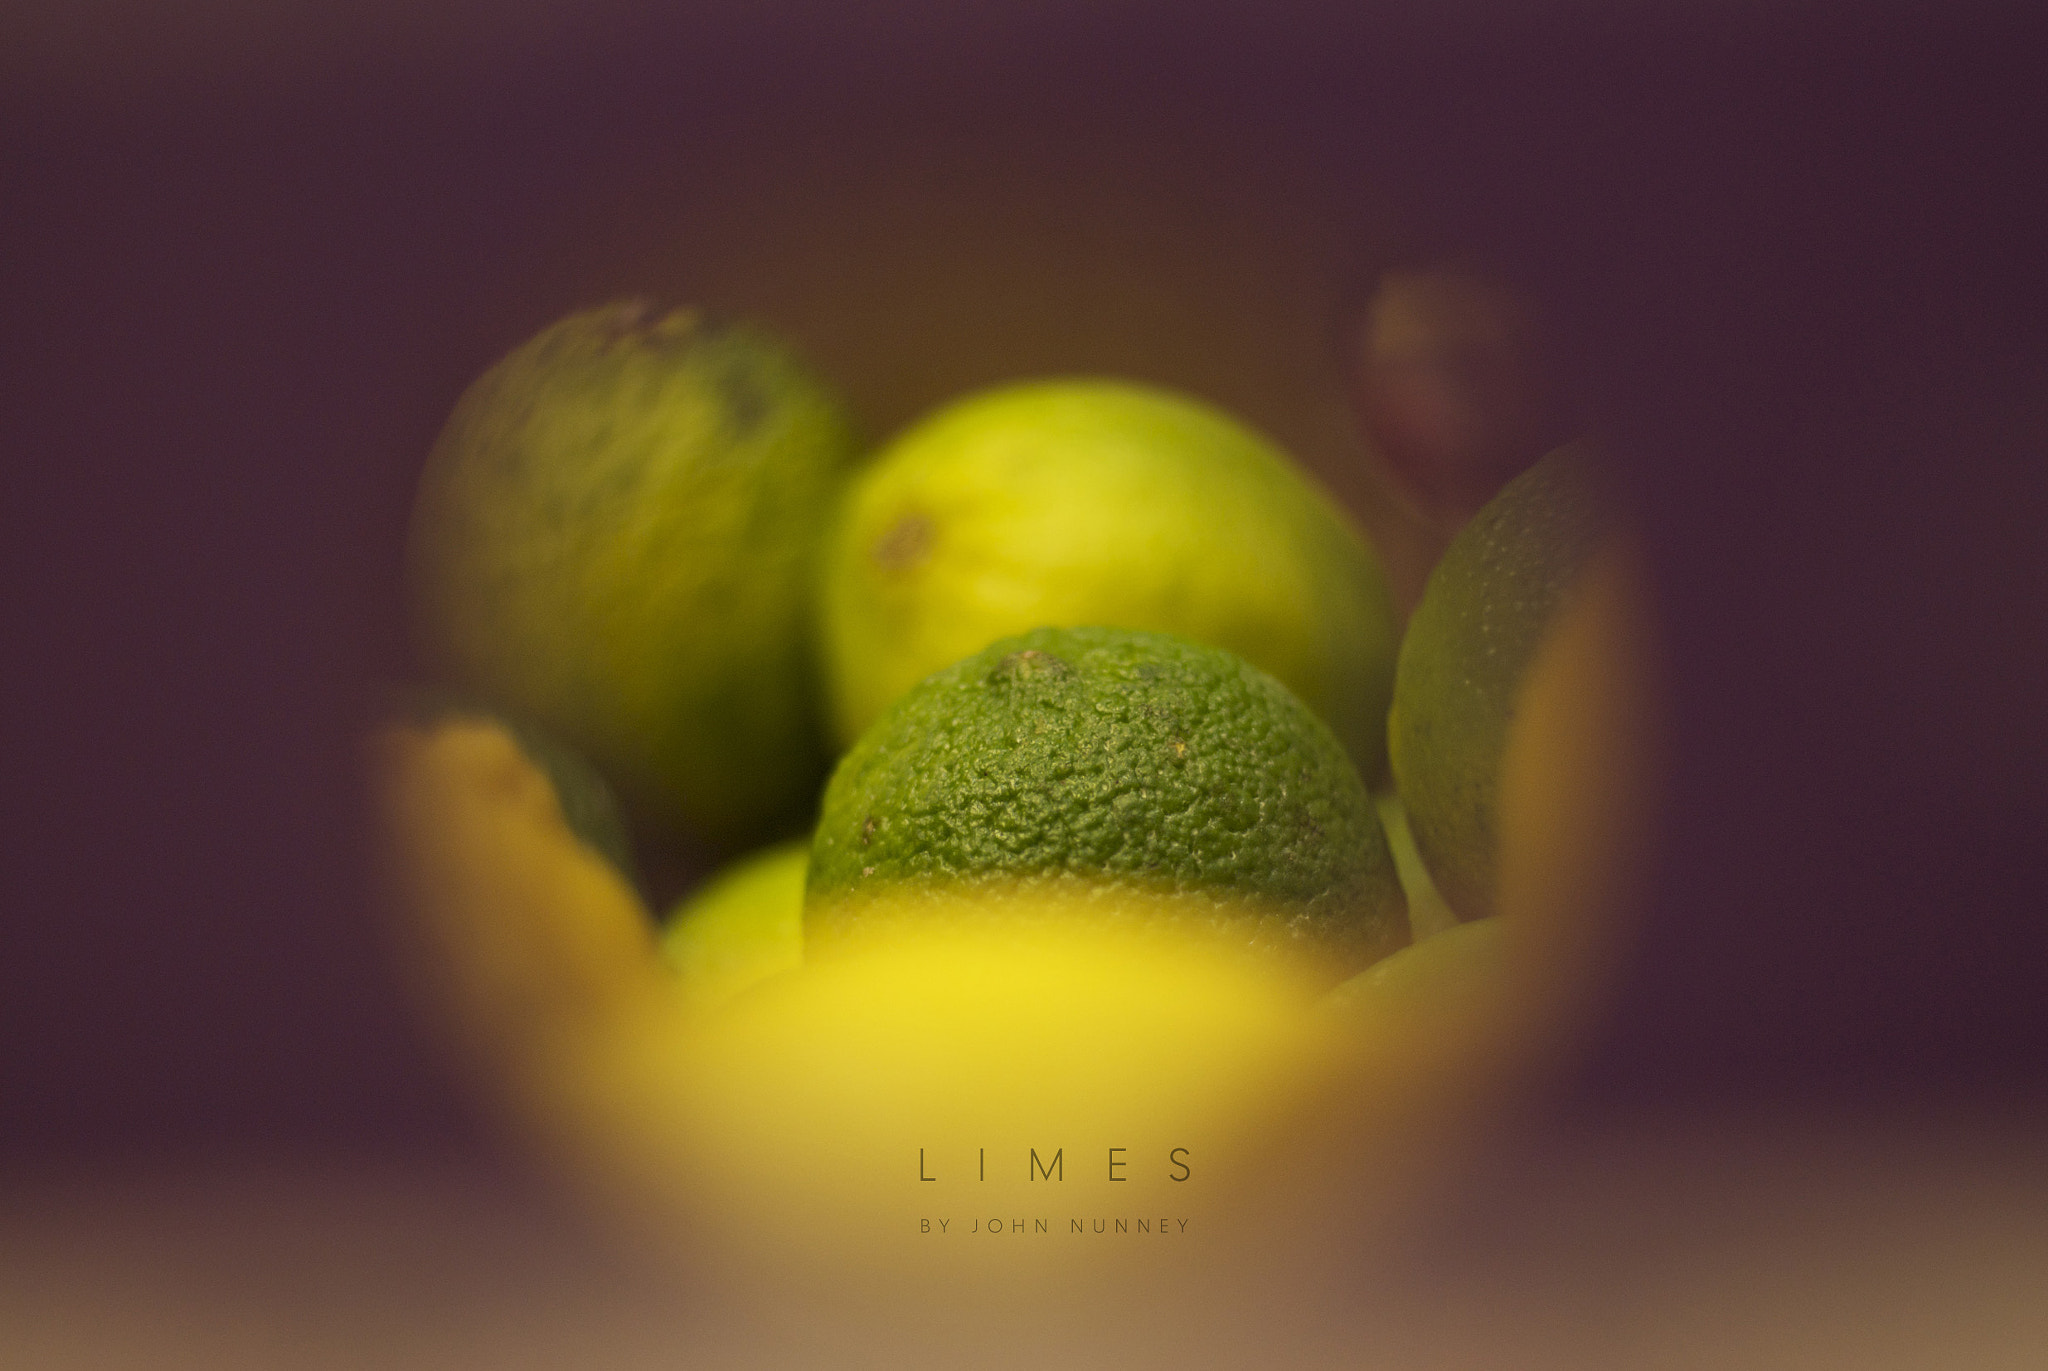 Photograph Limes by John Nunney on 500px